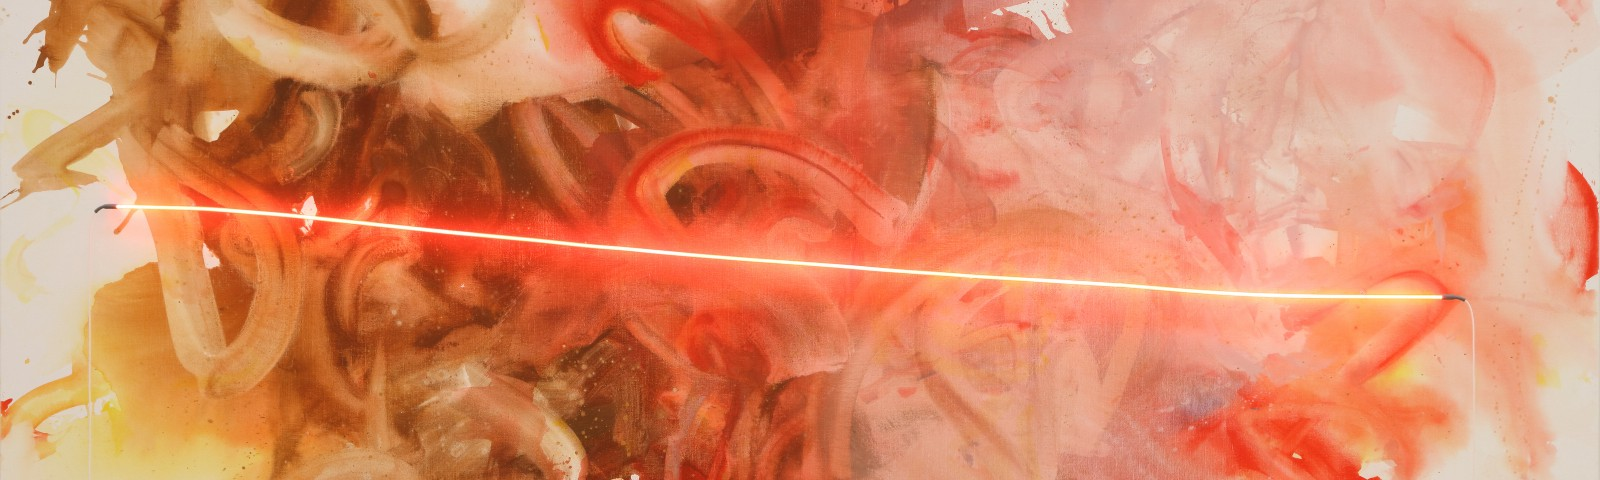 Mary Weatherford's painting featuring a neon light element swooping across a canvas of swirling orange and brown strokes.